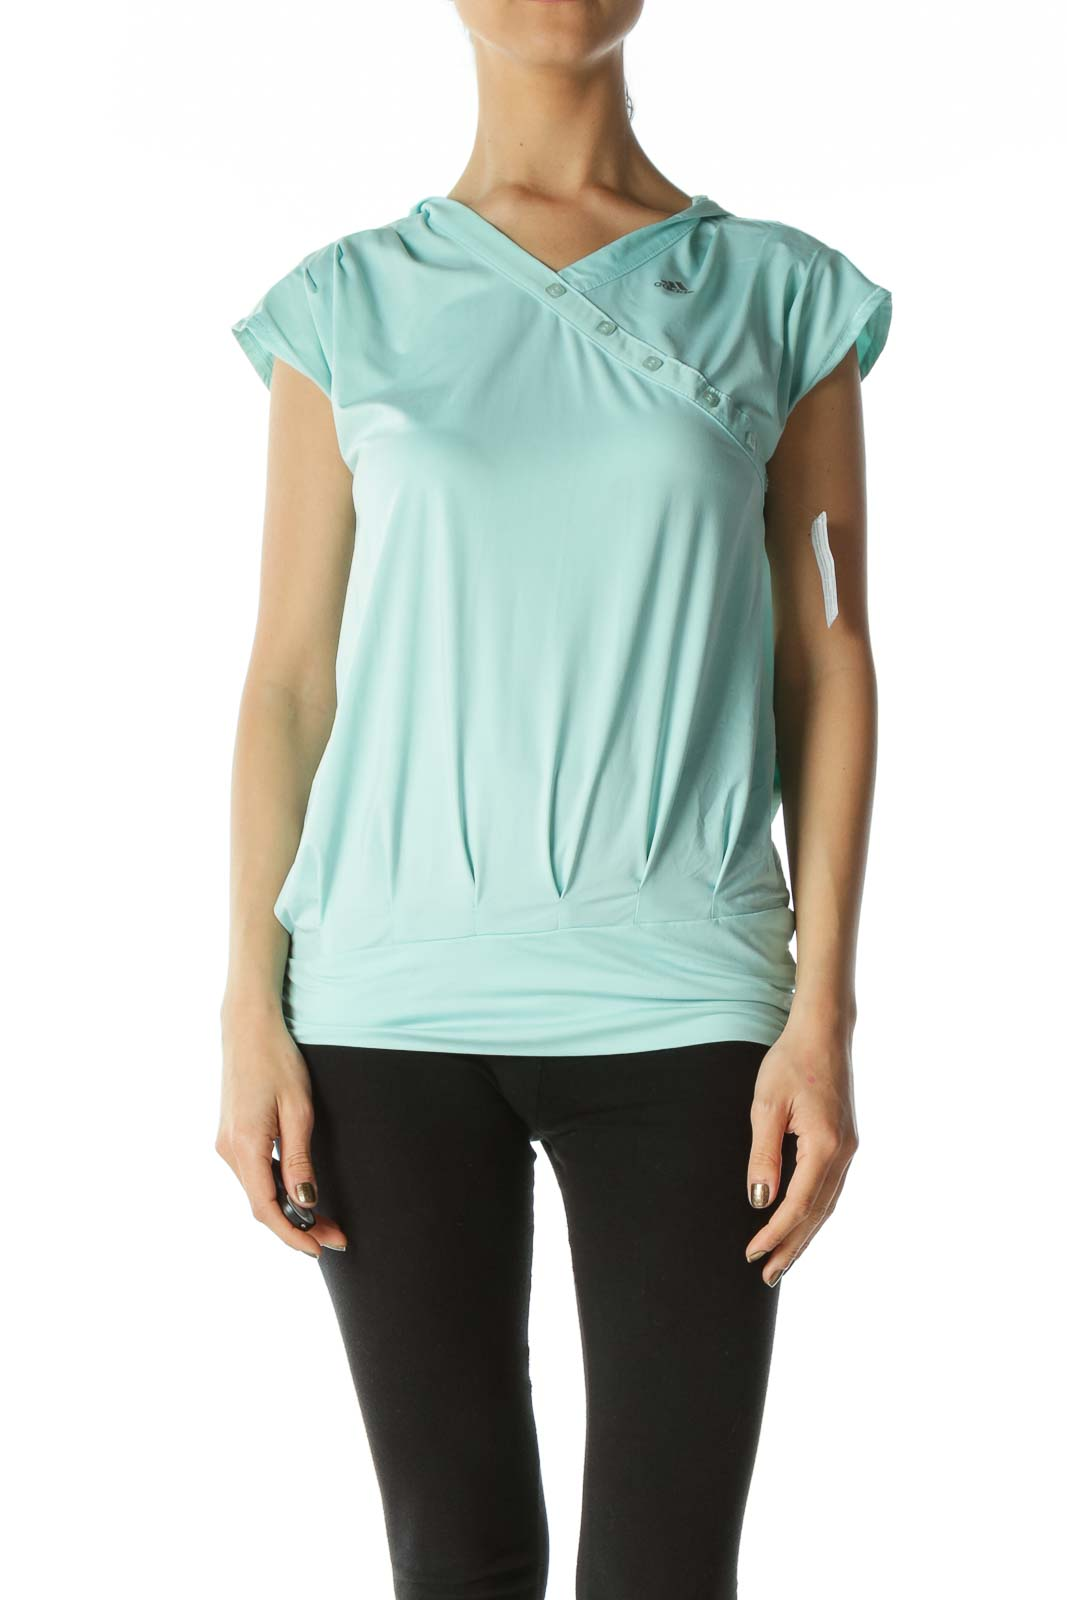 Teal Asymmetric-Buttoned Hooded Workout Tee